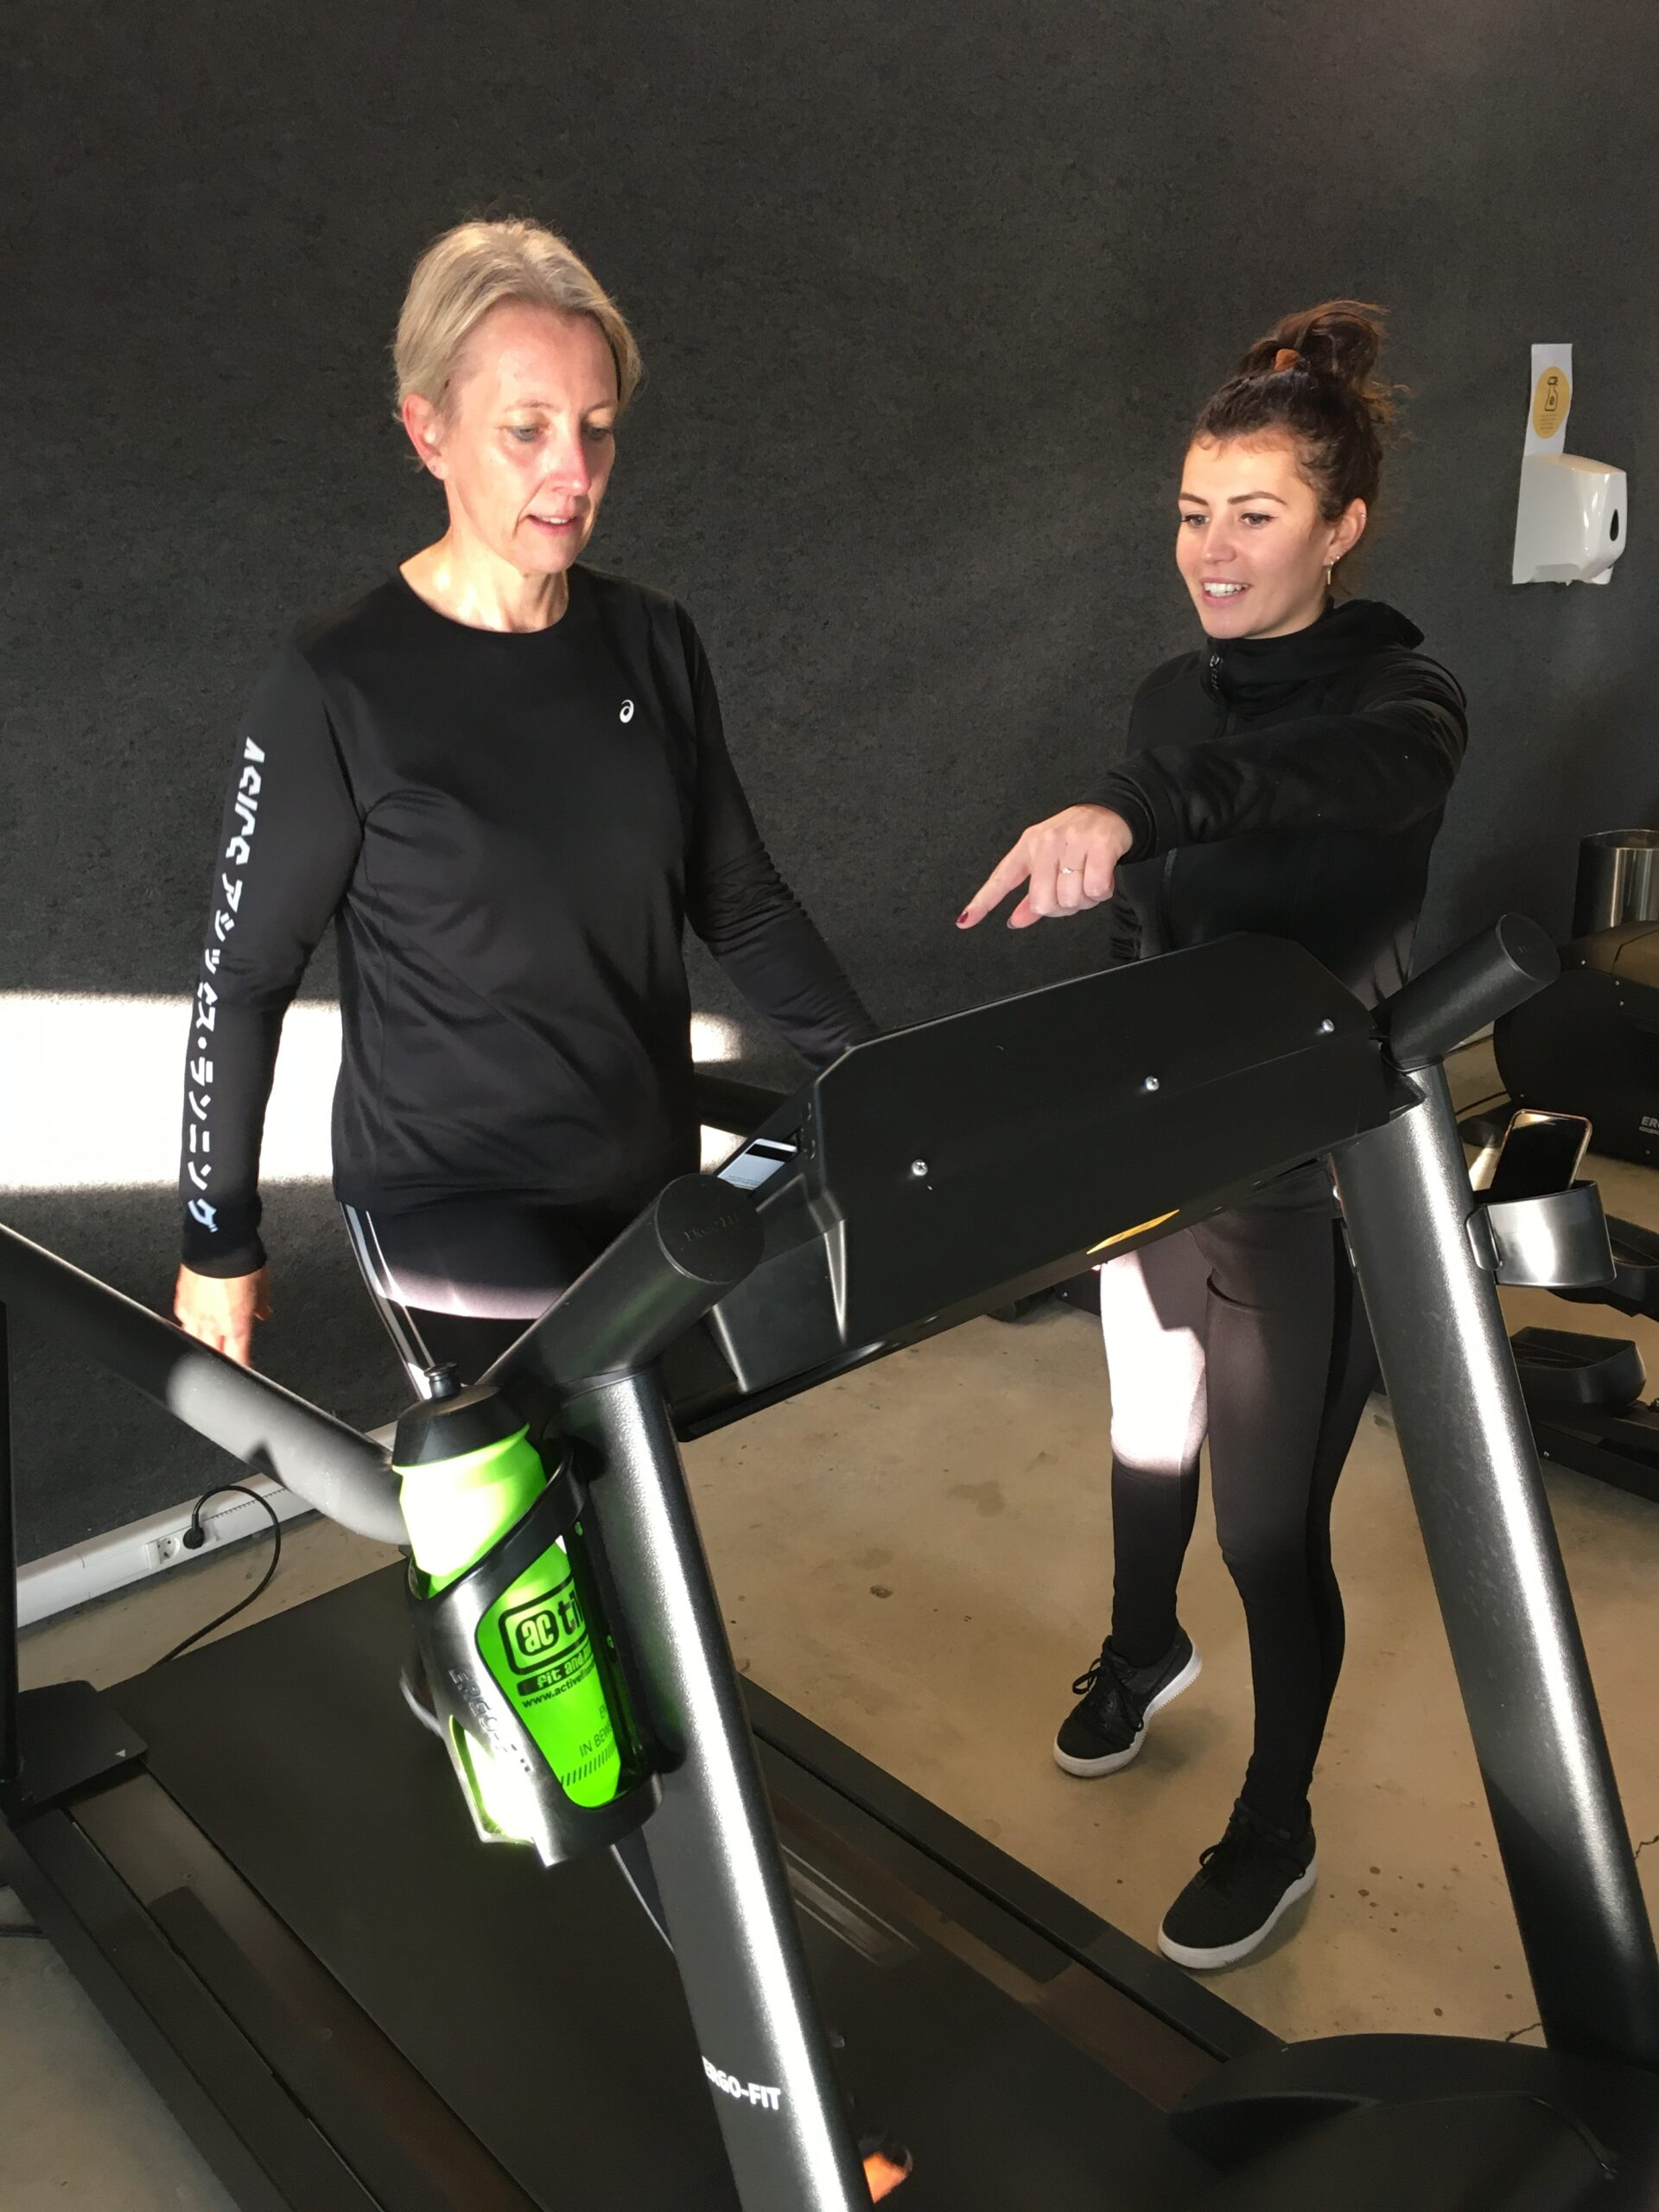 PT treadmill - Active Fit and More